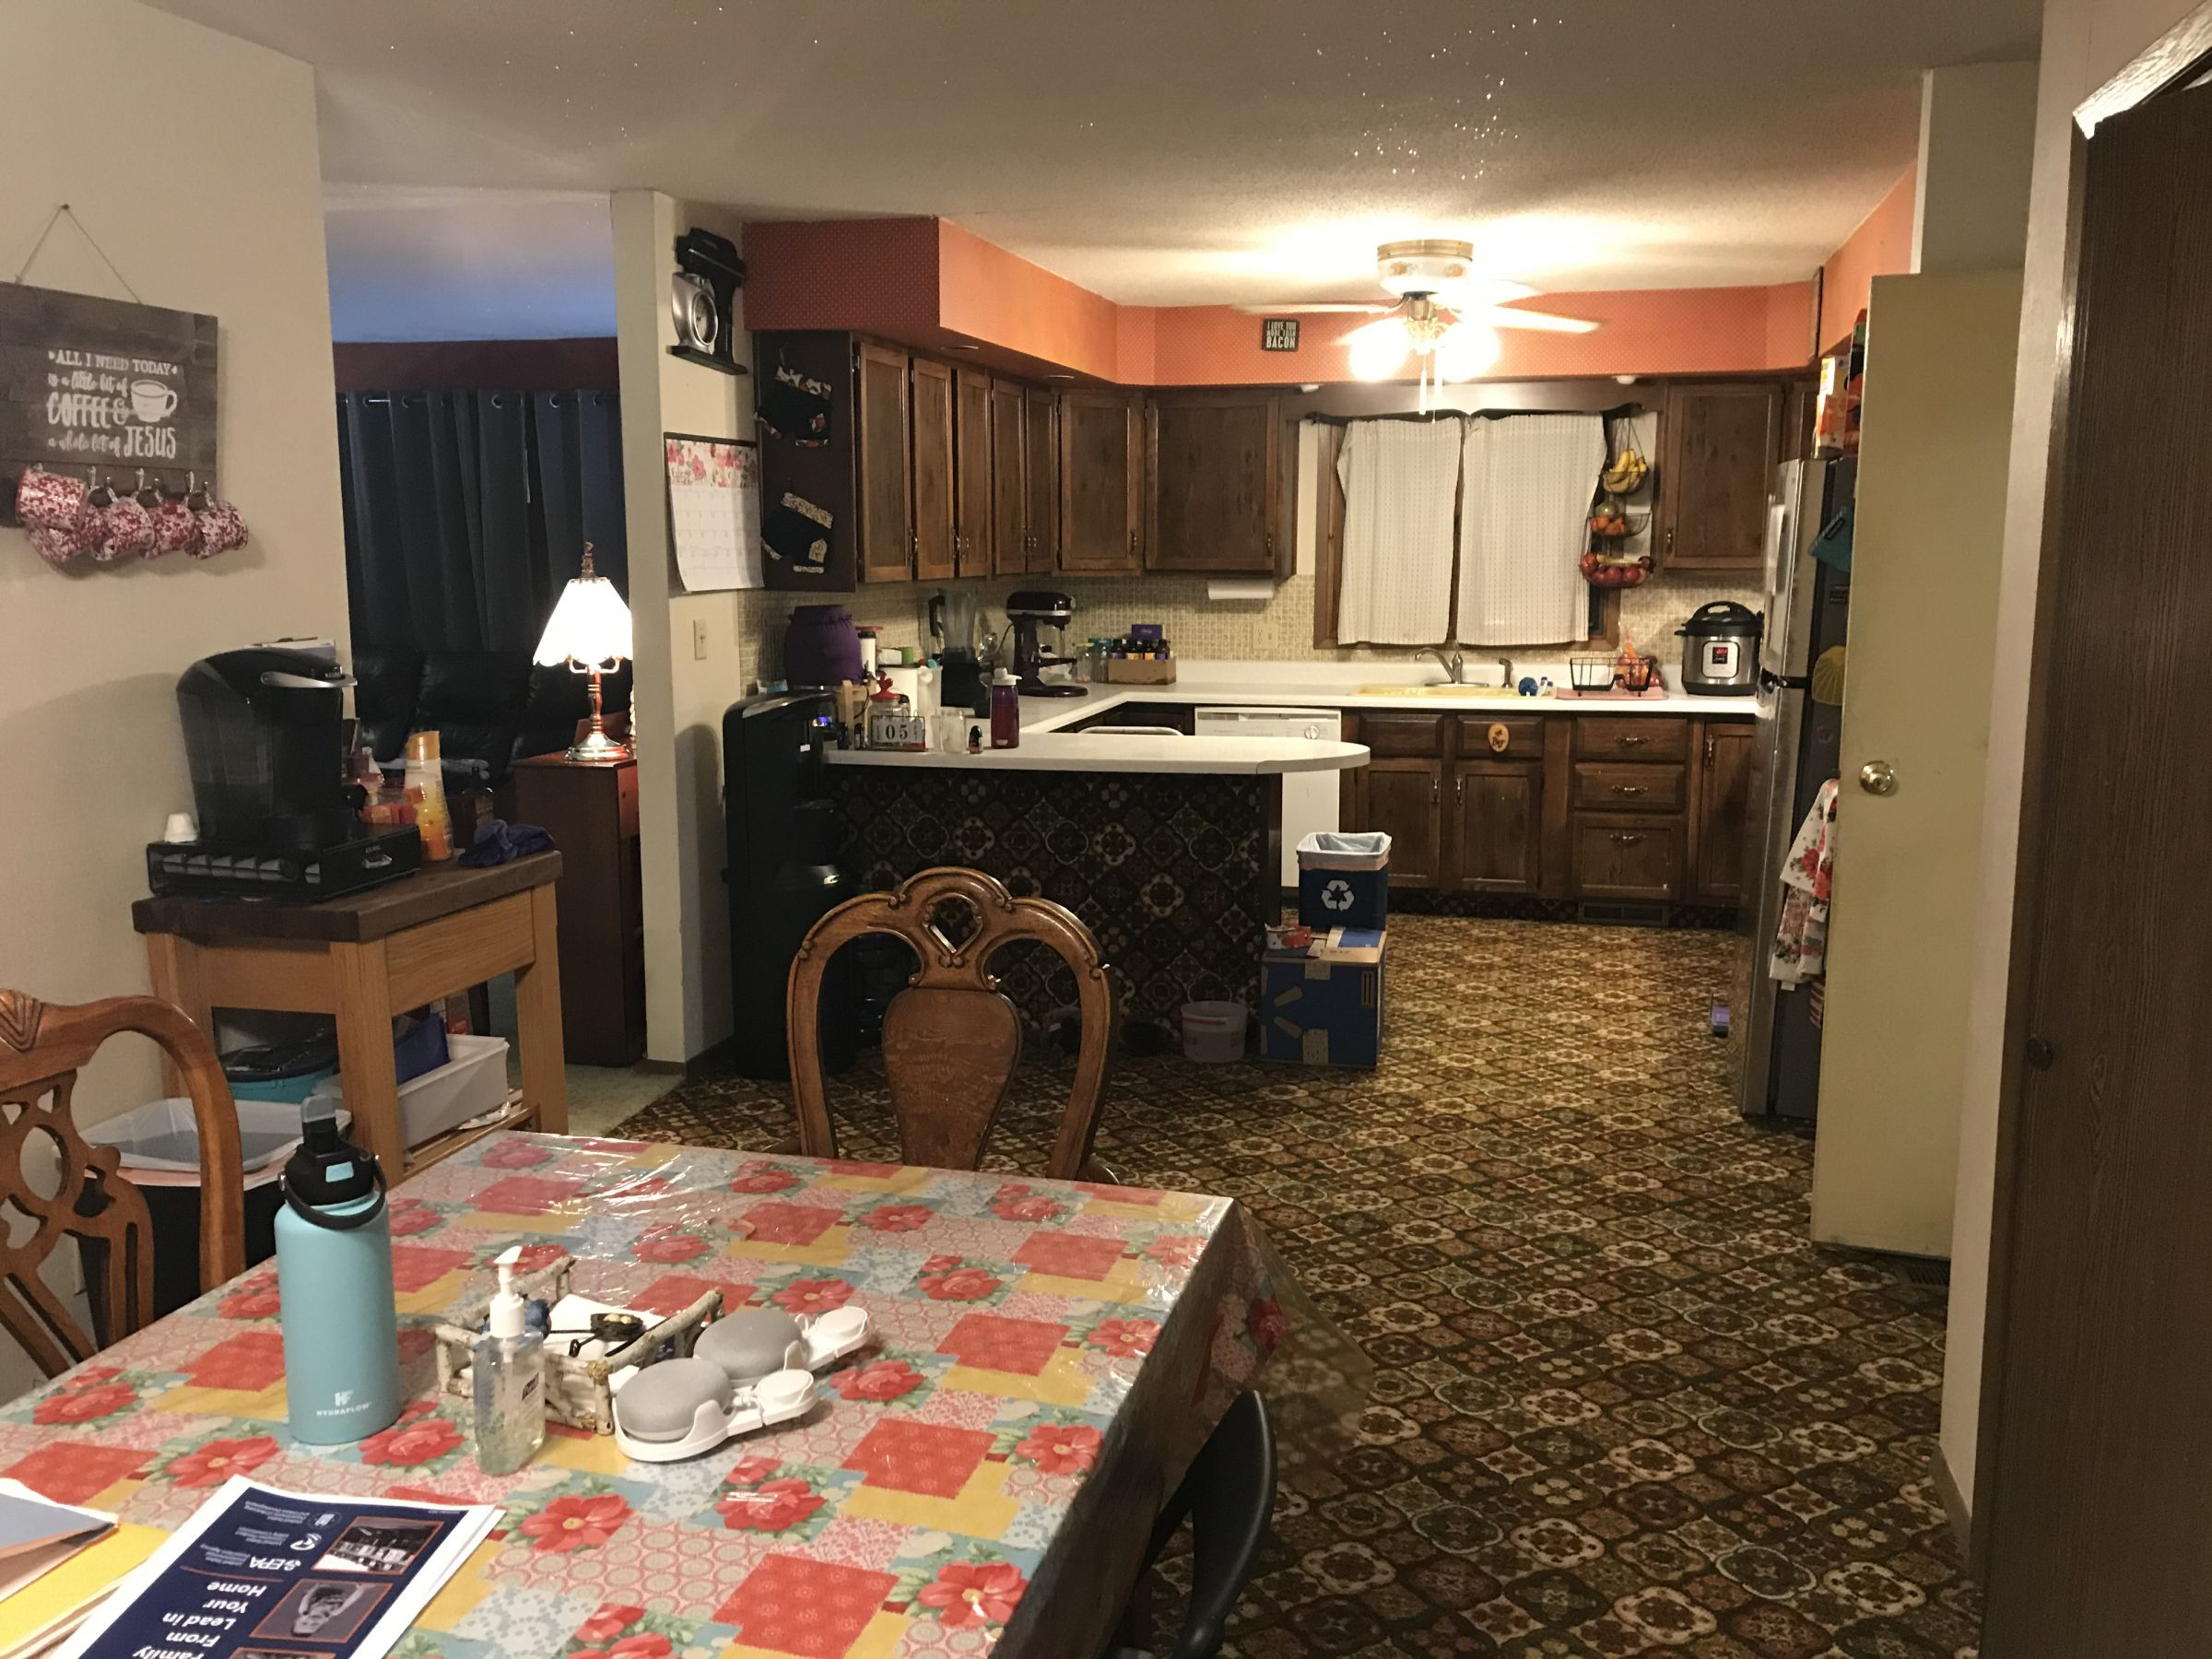 residential-lucas-county-iowa-0-acres-listing-number-15320-7-2021-02-08-180019.jpg